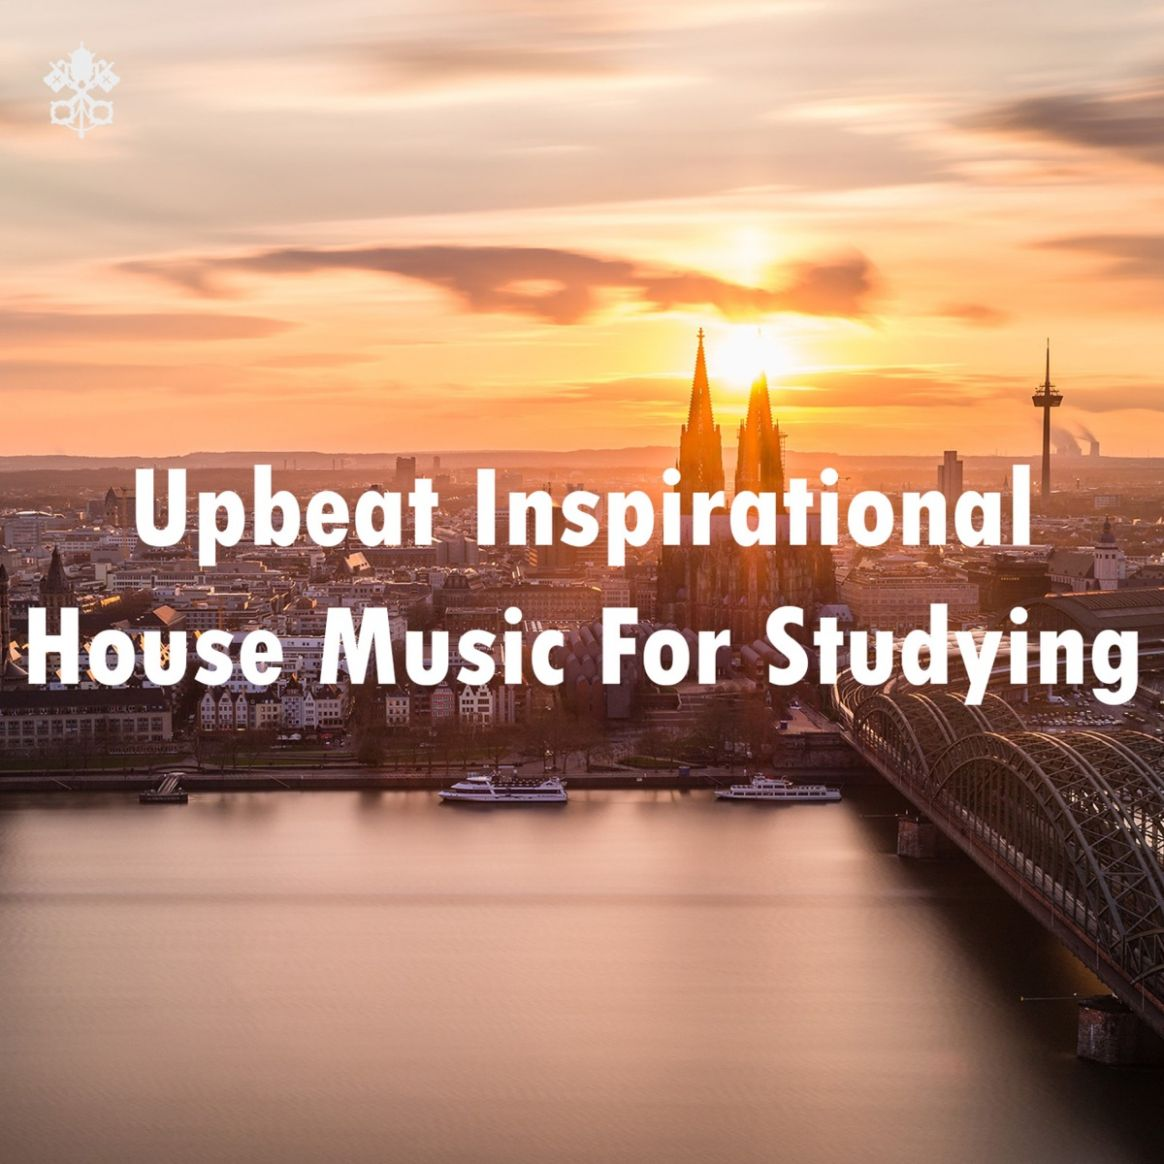 Upbeat Inspirational House Music For Studying Album Cover by ...